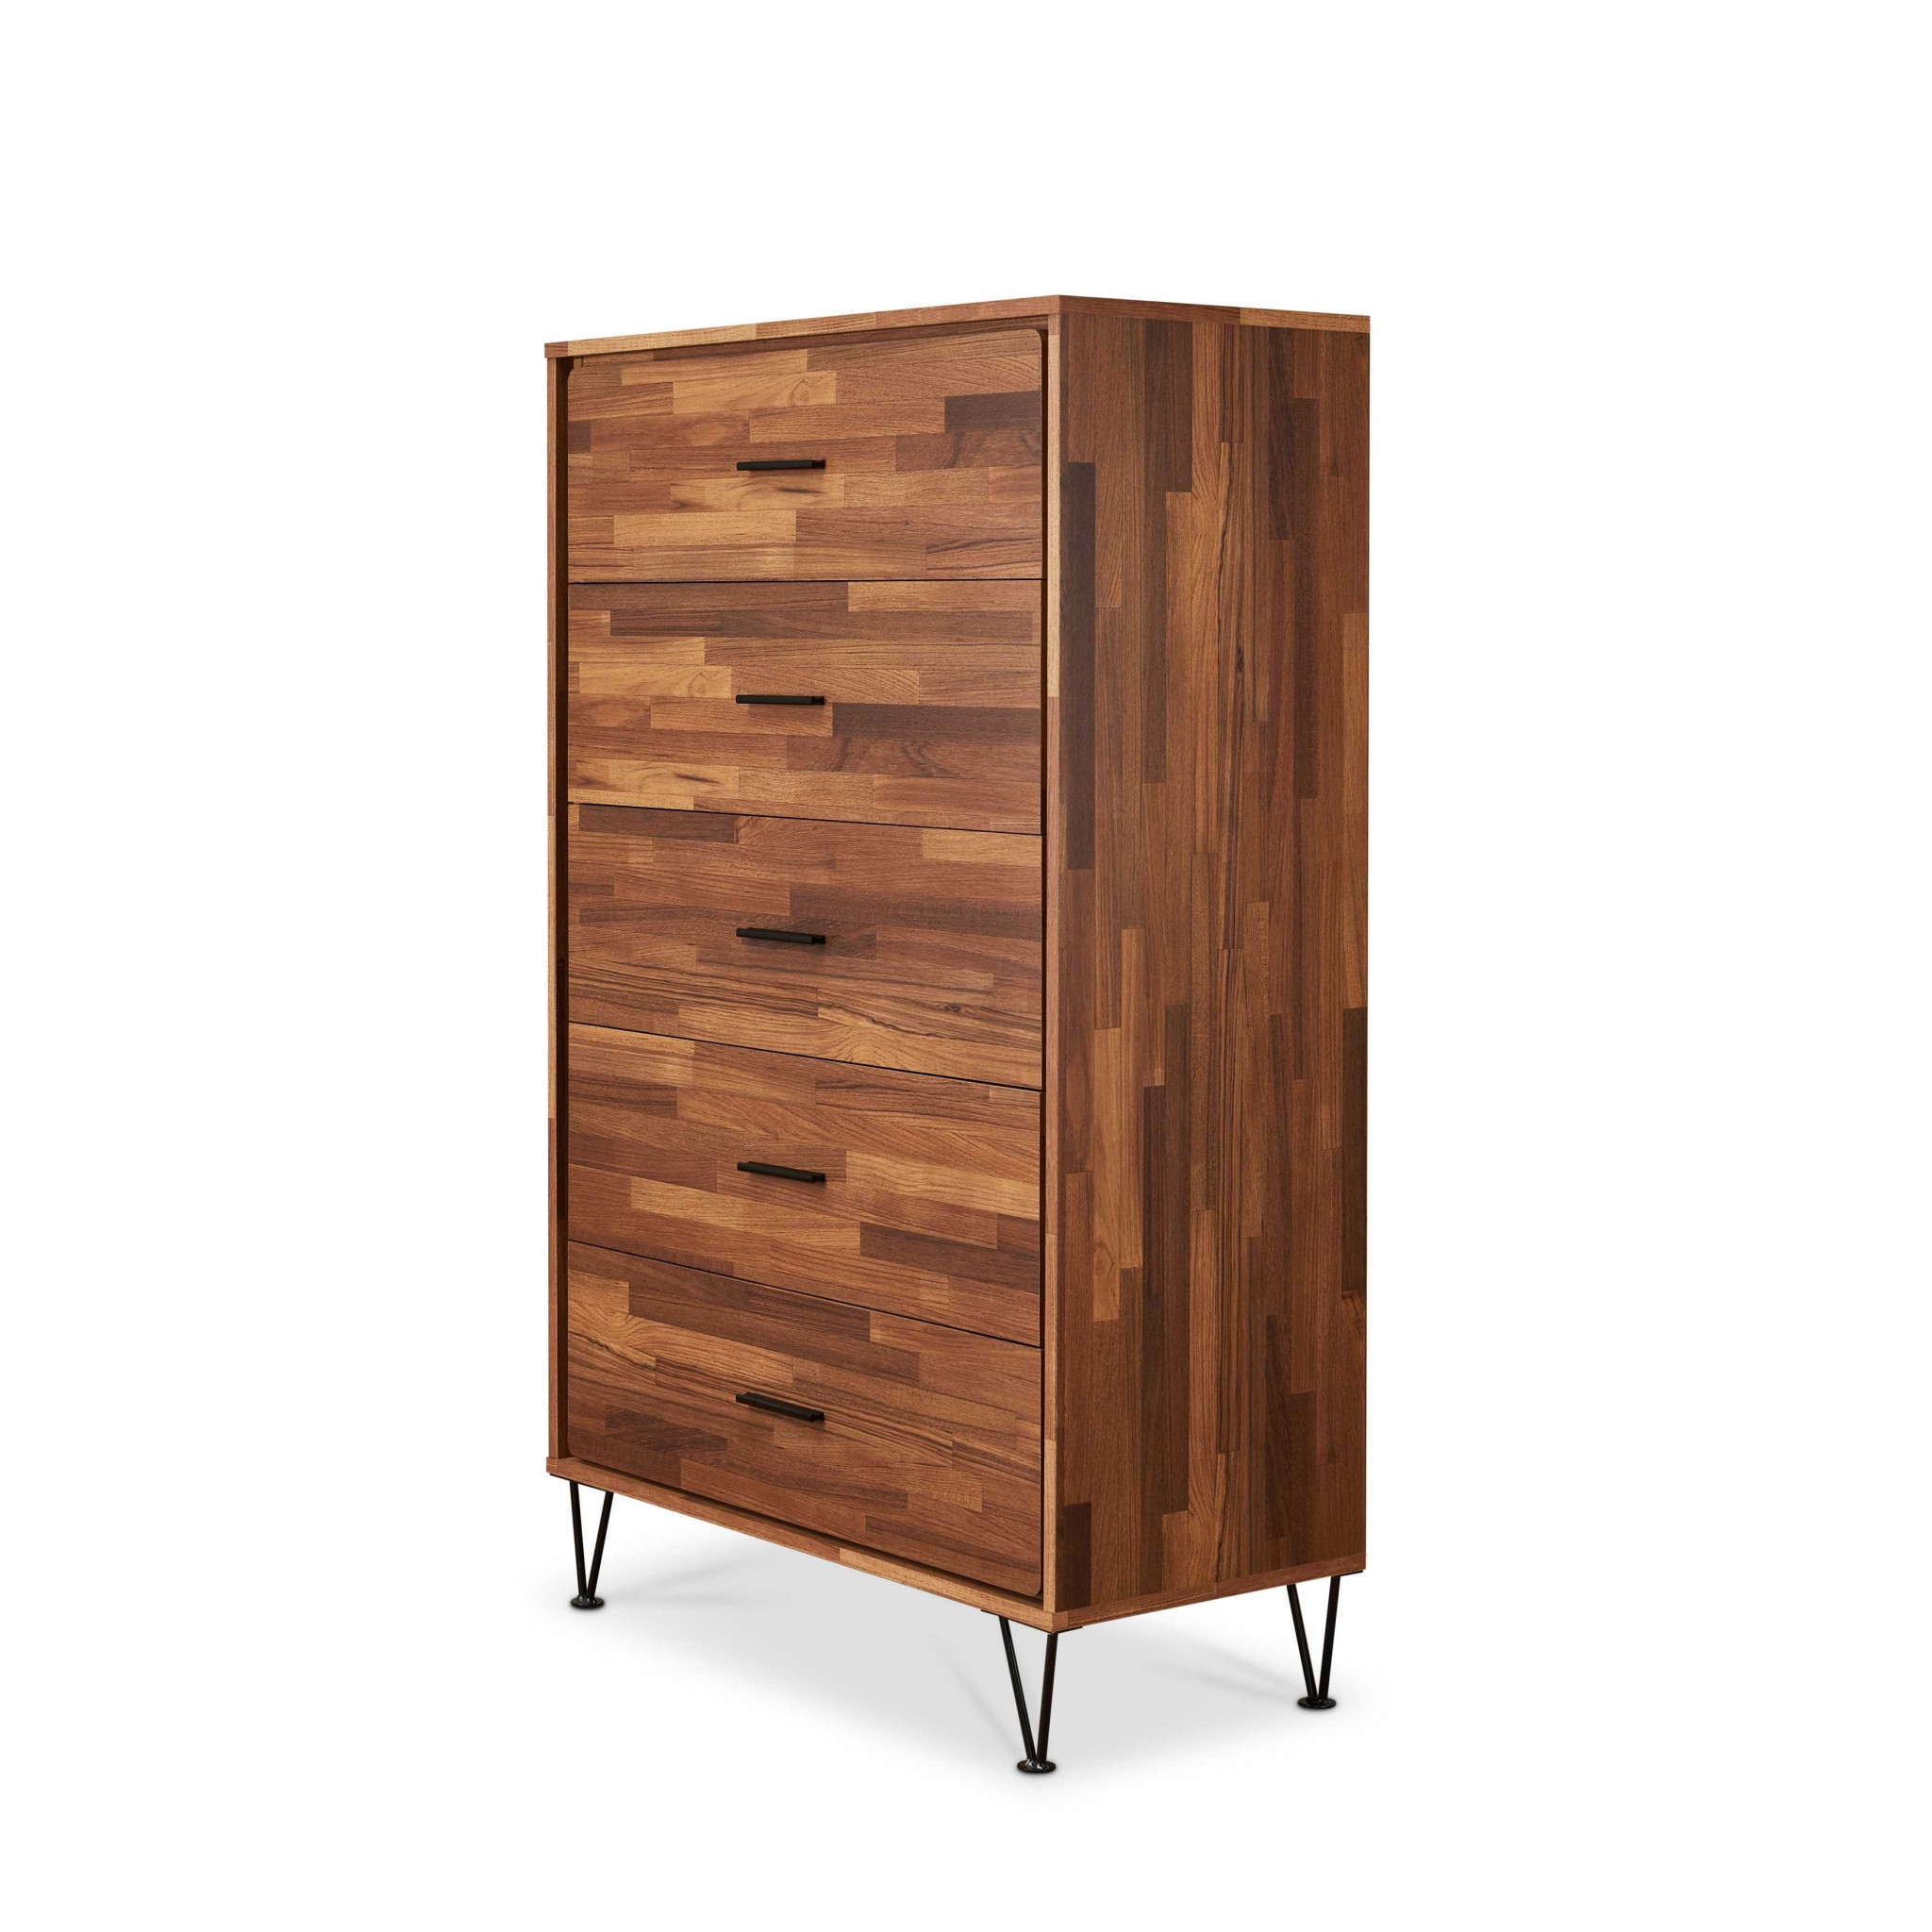 Chest In Walnut - Particle Board, Mdf, Meta Walnut